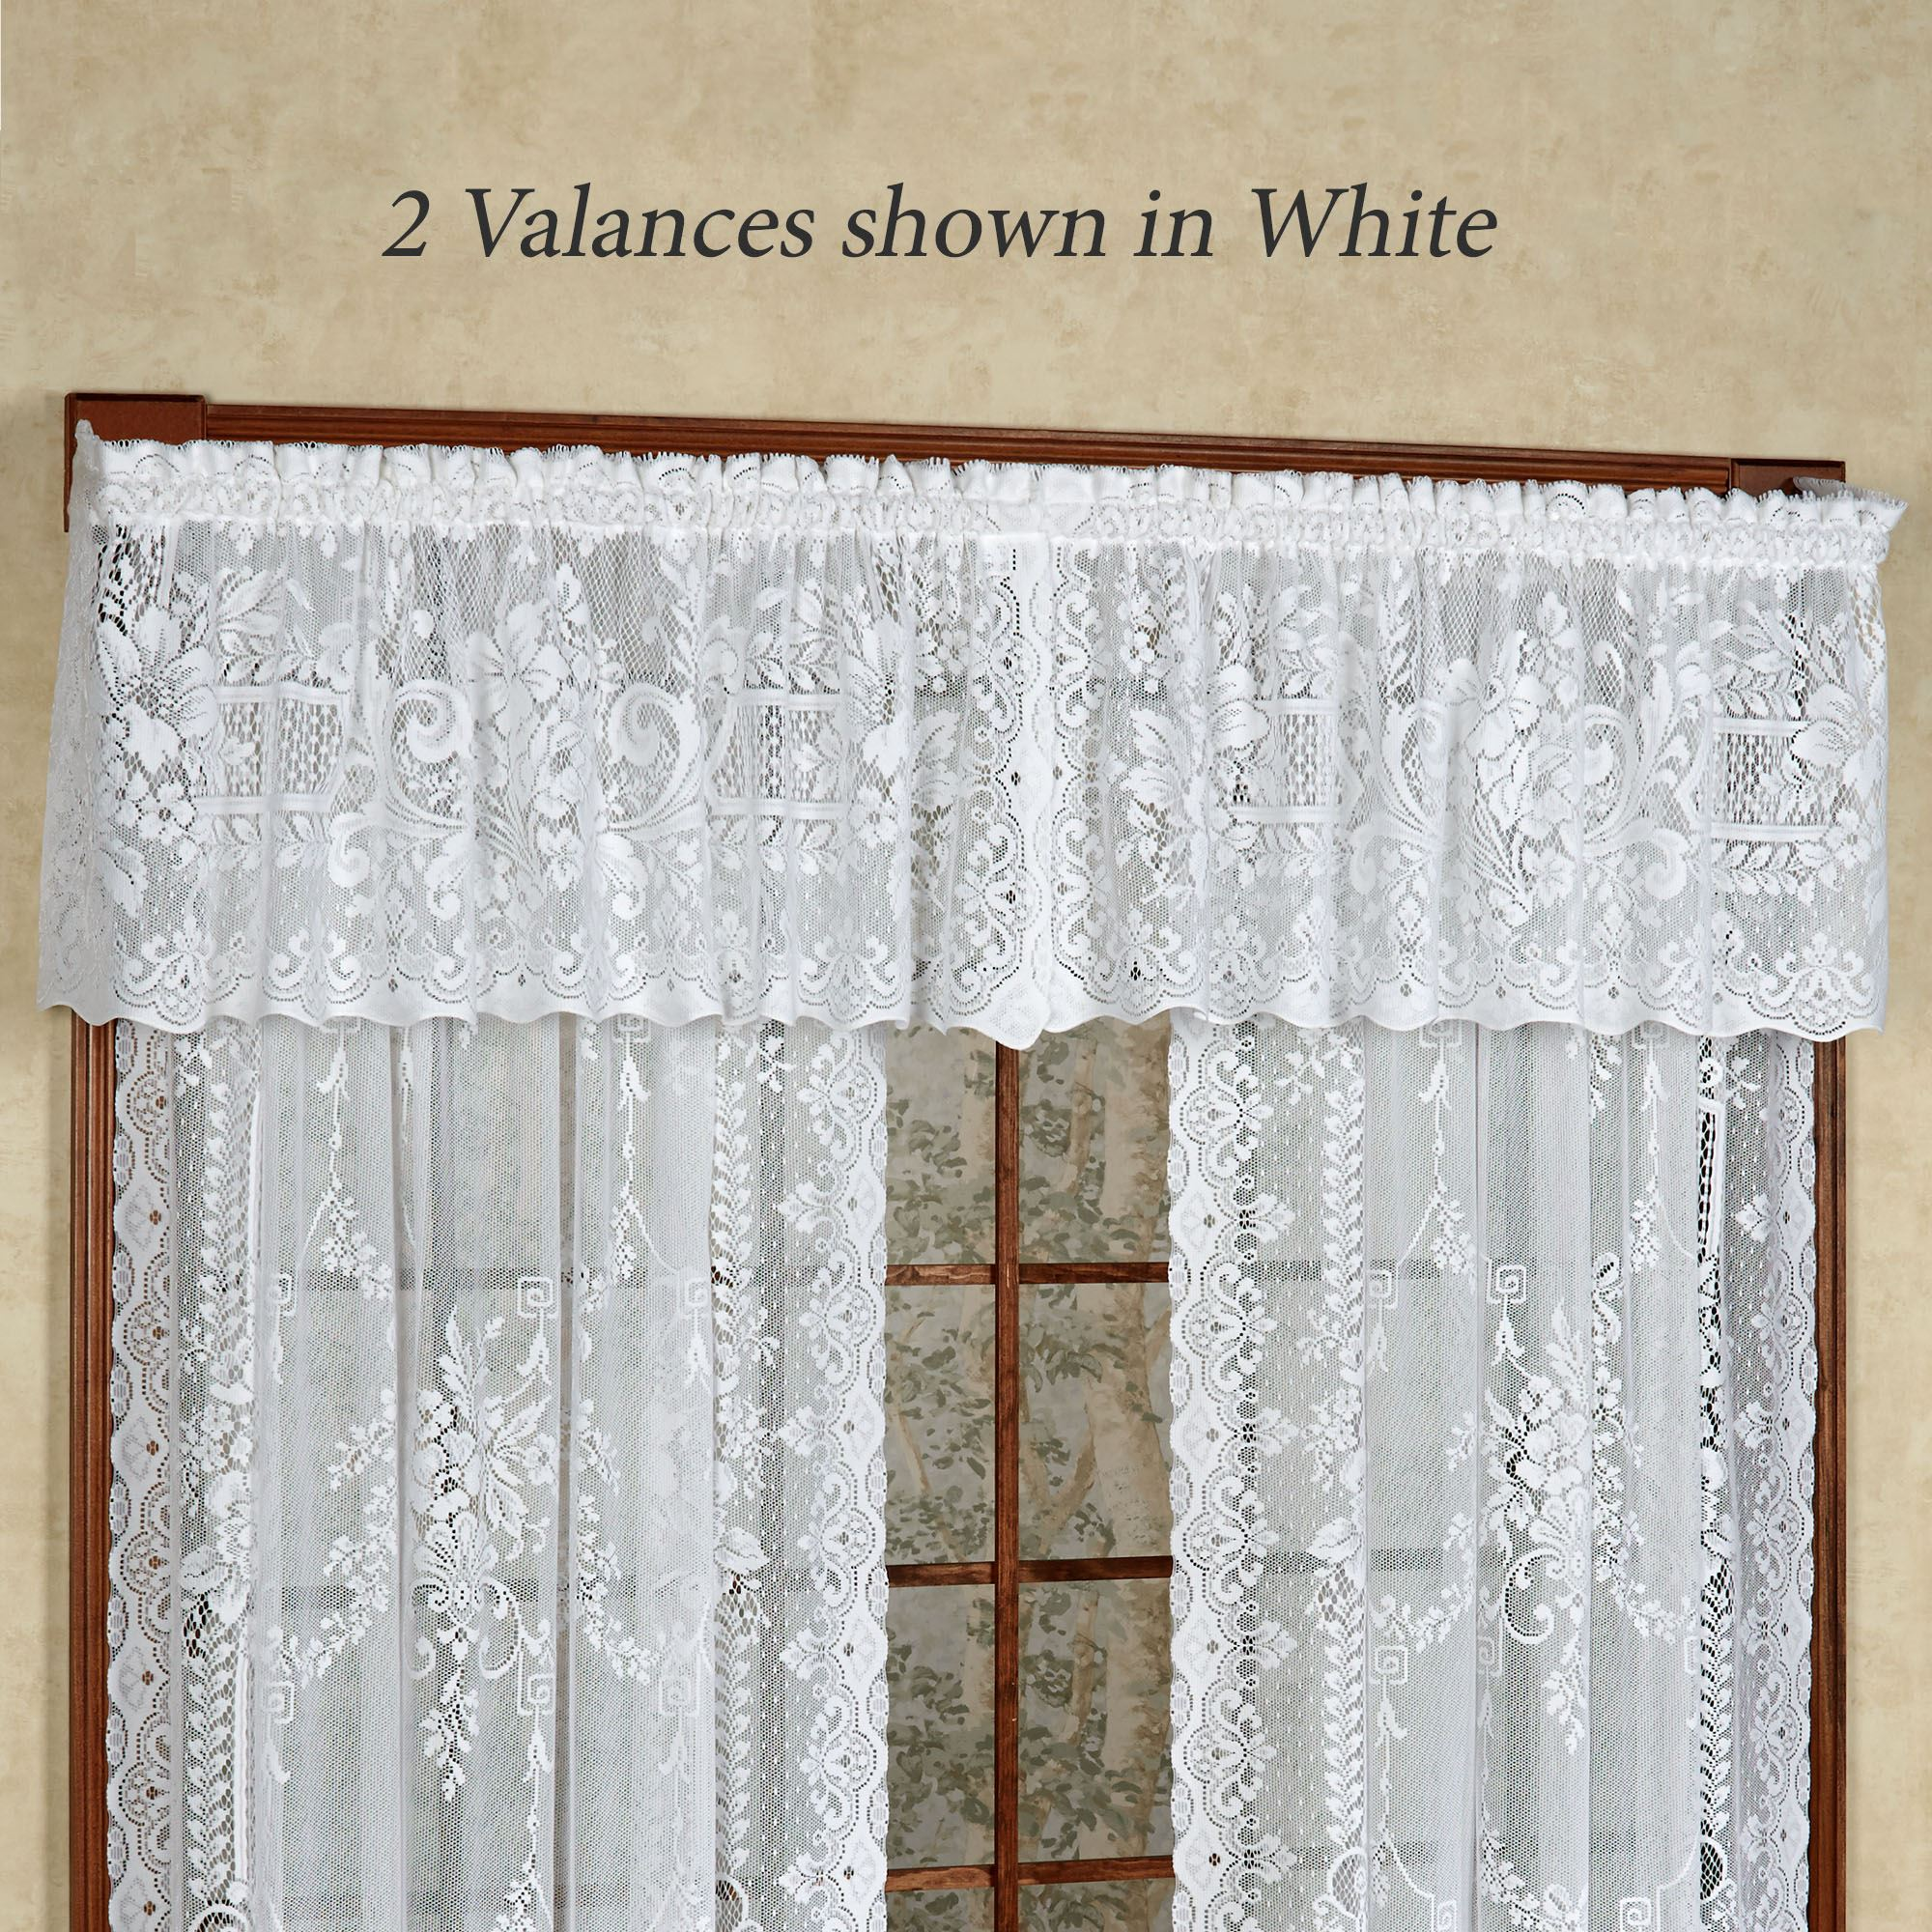 to curtain be vashon window valance how com for cortinas lace valances curtains and pin not windows decora door privacy daylight sure but would great attach crochet croche o